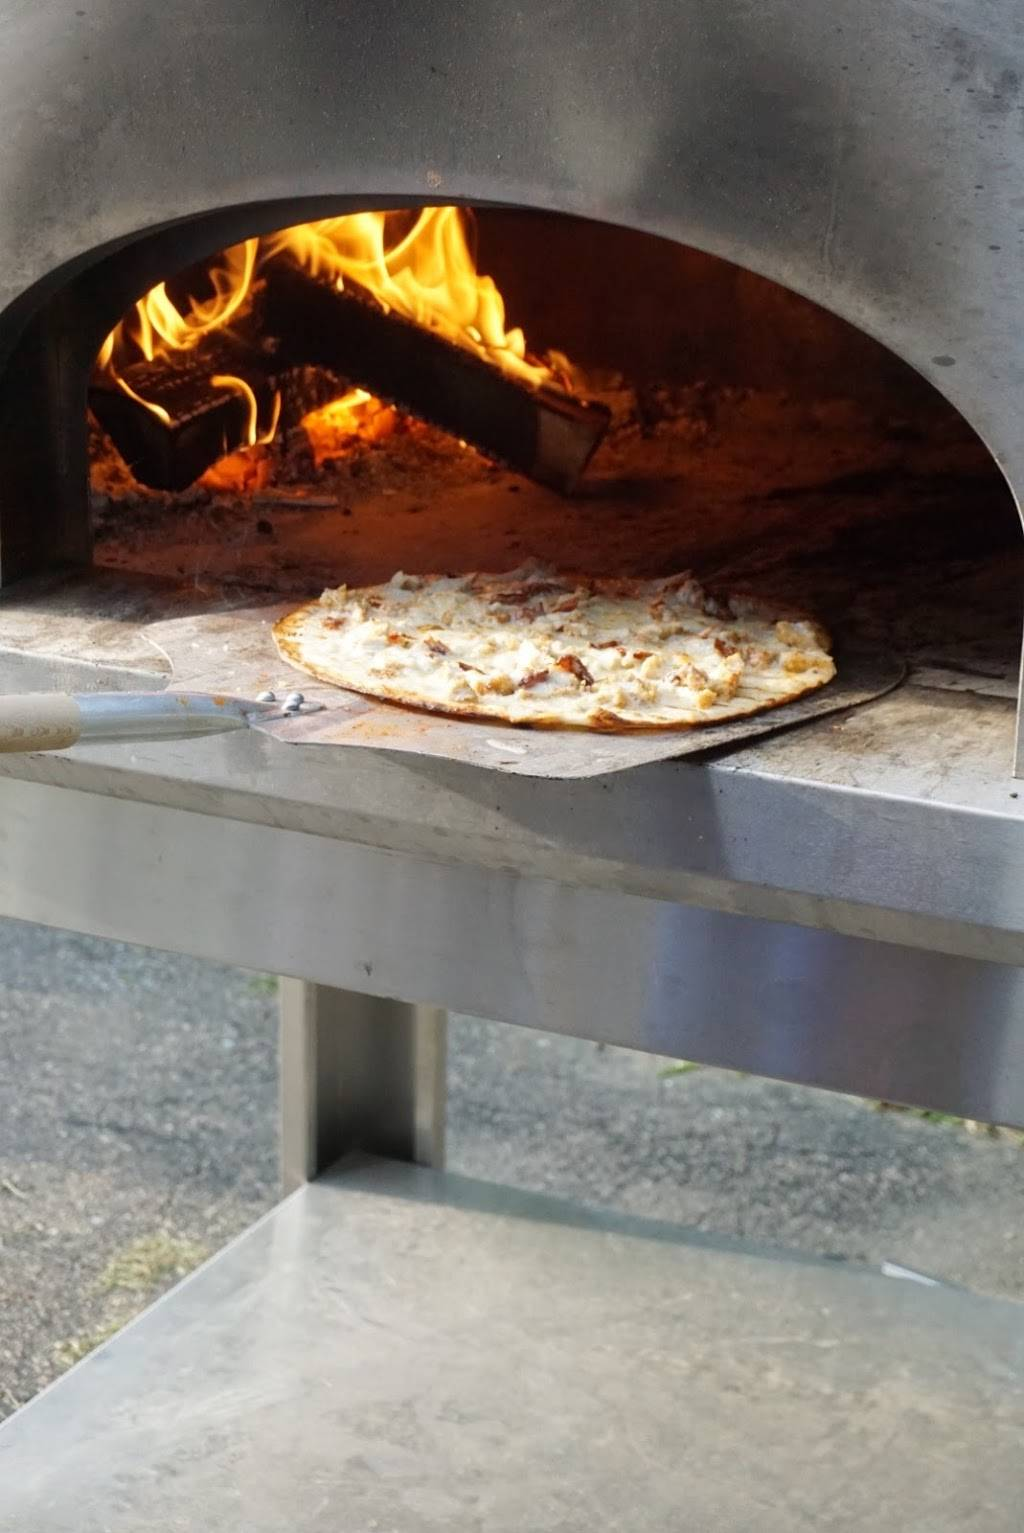 [PIZZA CATERING OFFICE] Newport Pizza Co. | restaurant | 140 Thames St 3rd Floor, Newport, RI 02840, USA | 4016827576 OR +1 401-682-7576